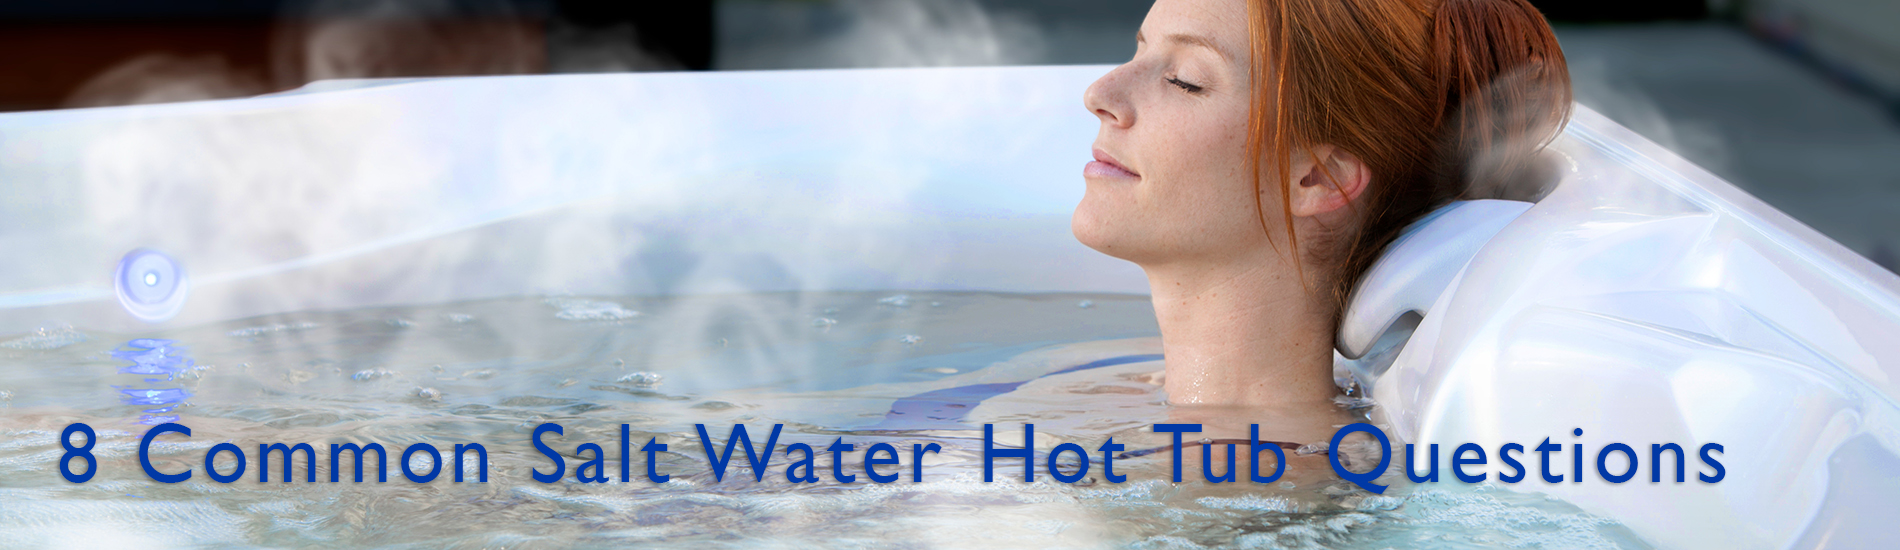 8 Common Salt Water Hot Tub Questions Answered